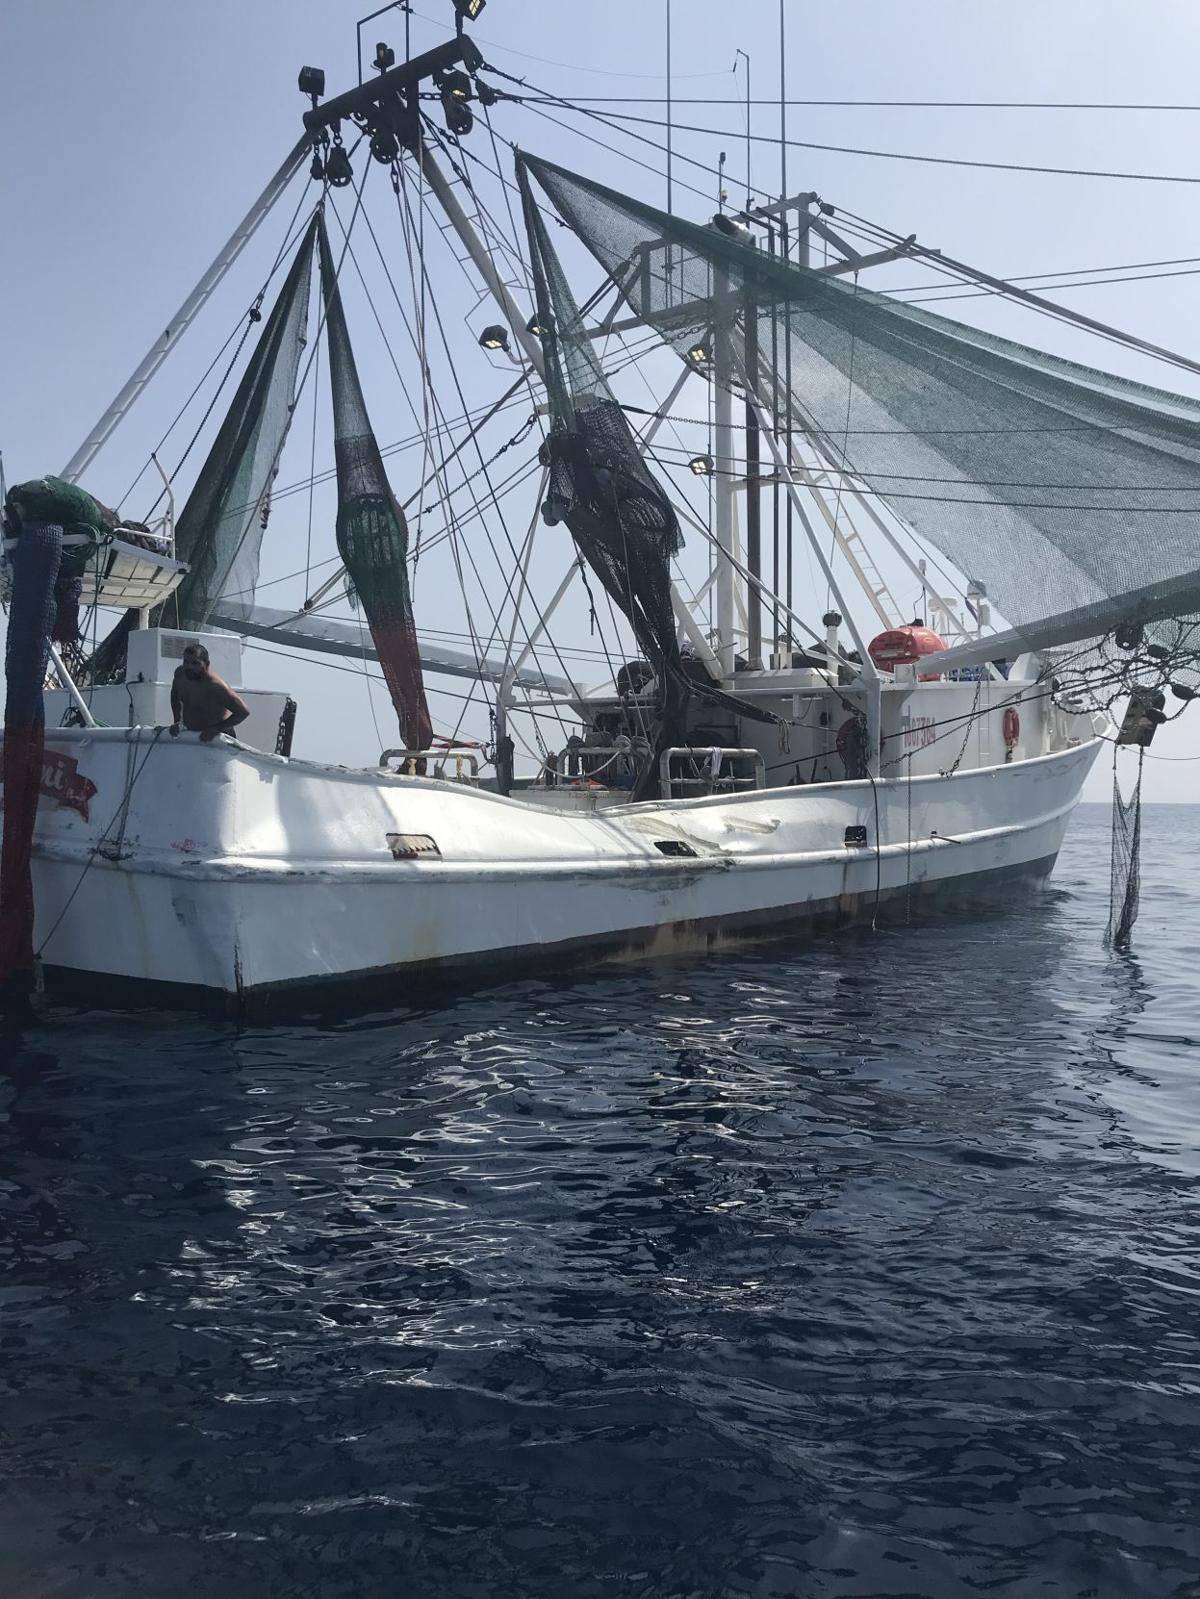 High-dollar sports fishing boat crashes into shrimping boat, sinks